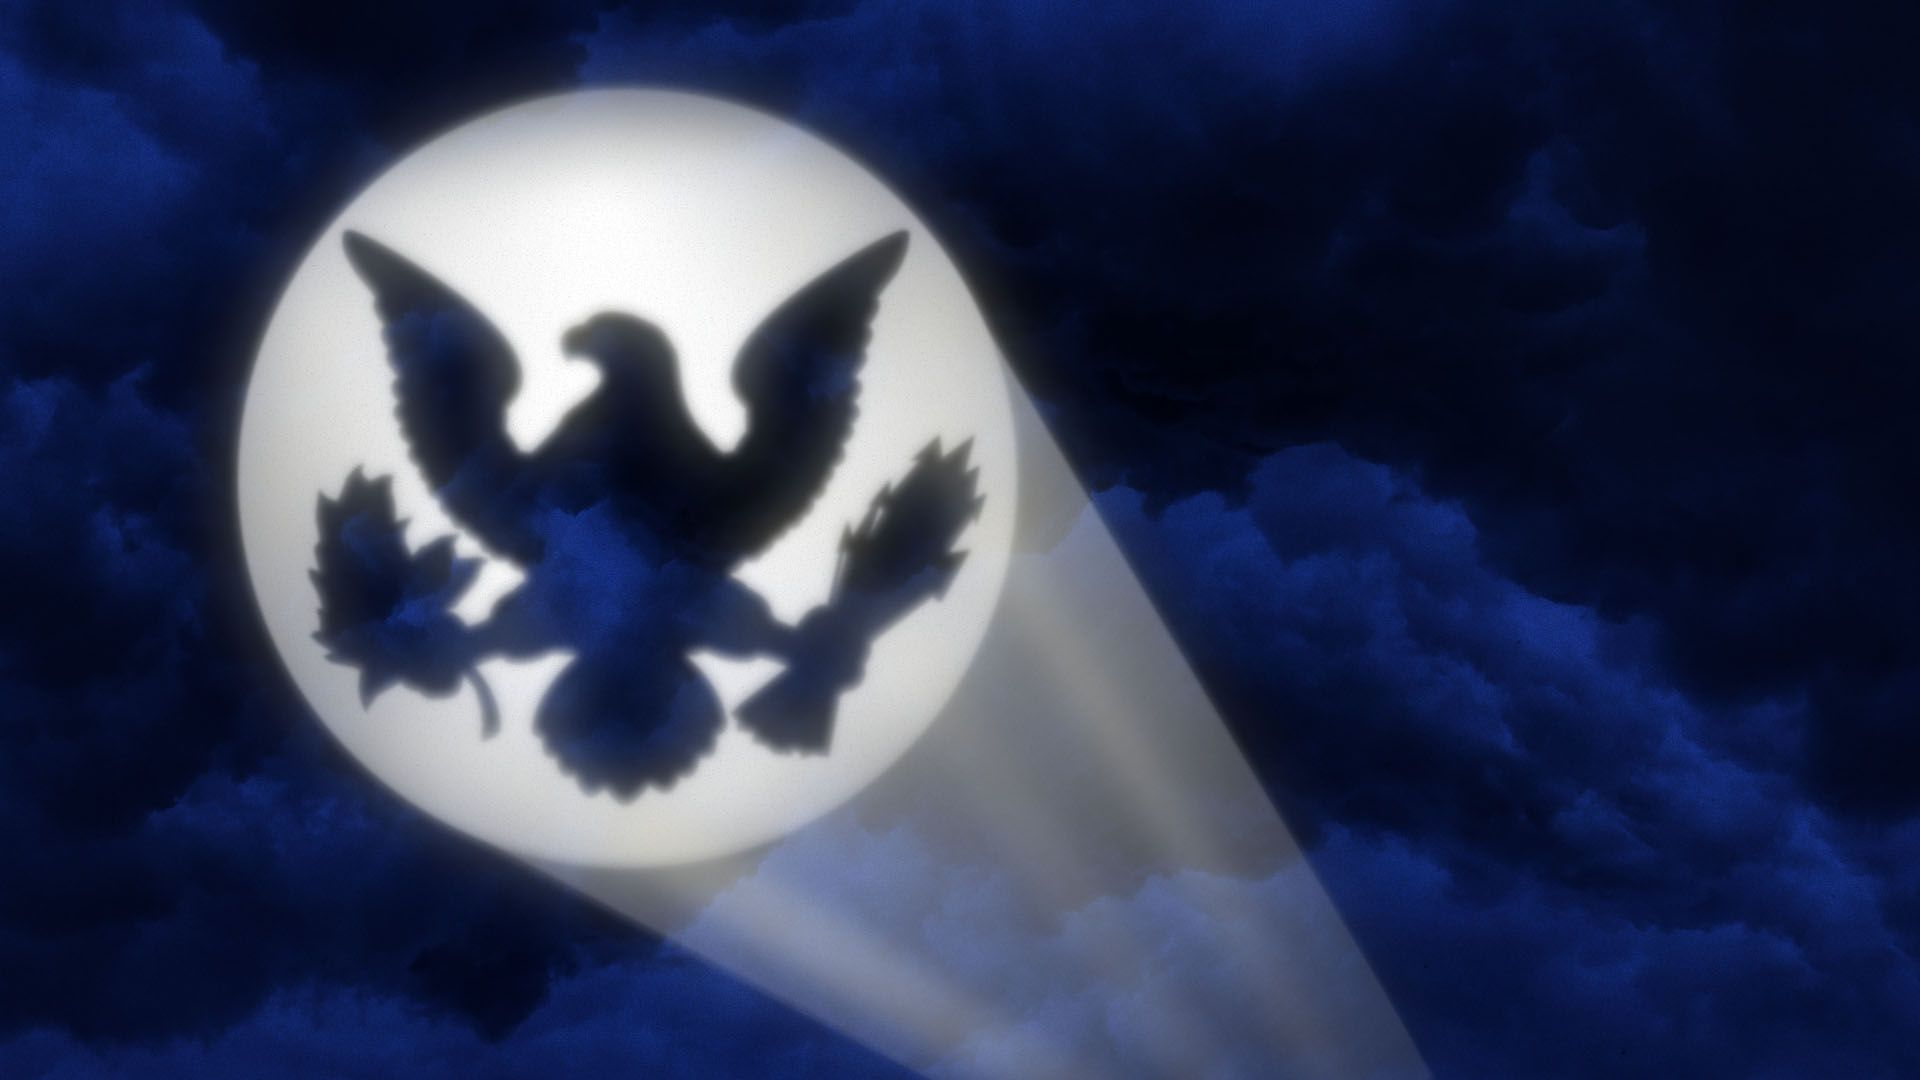 Illustration of the bat signal with the Presidential sea